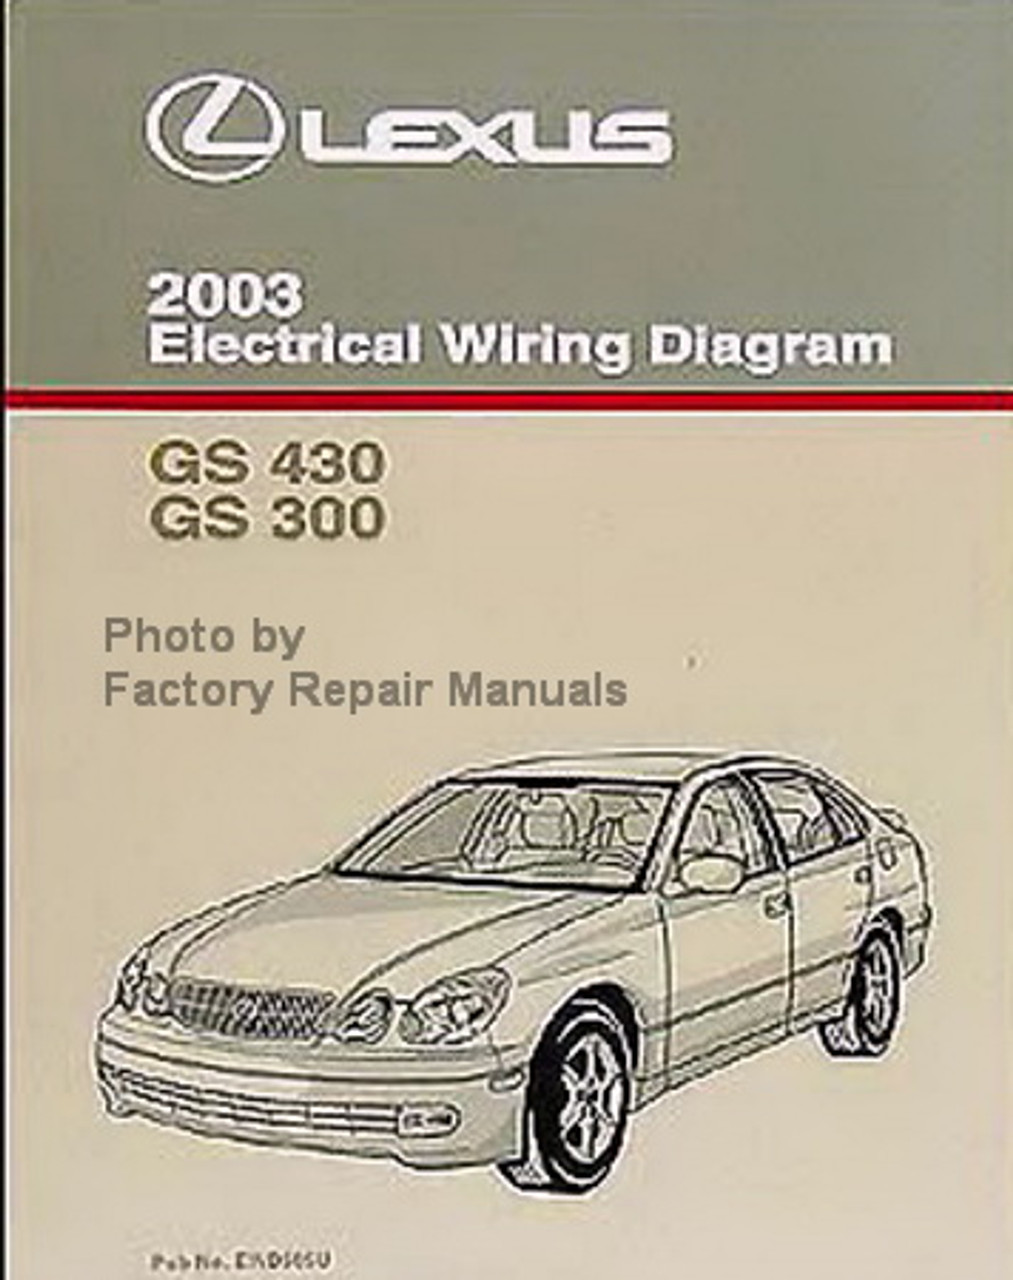 [DIAGRAM_38YU]  2003 Lexus GS430 & GS300 Electrical Wiring Diagrams Original - Factory  Repair Manuals | Lexus Gs Engine Diagram |  | Factory Repair Manuals